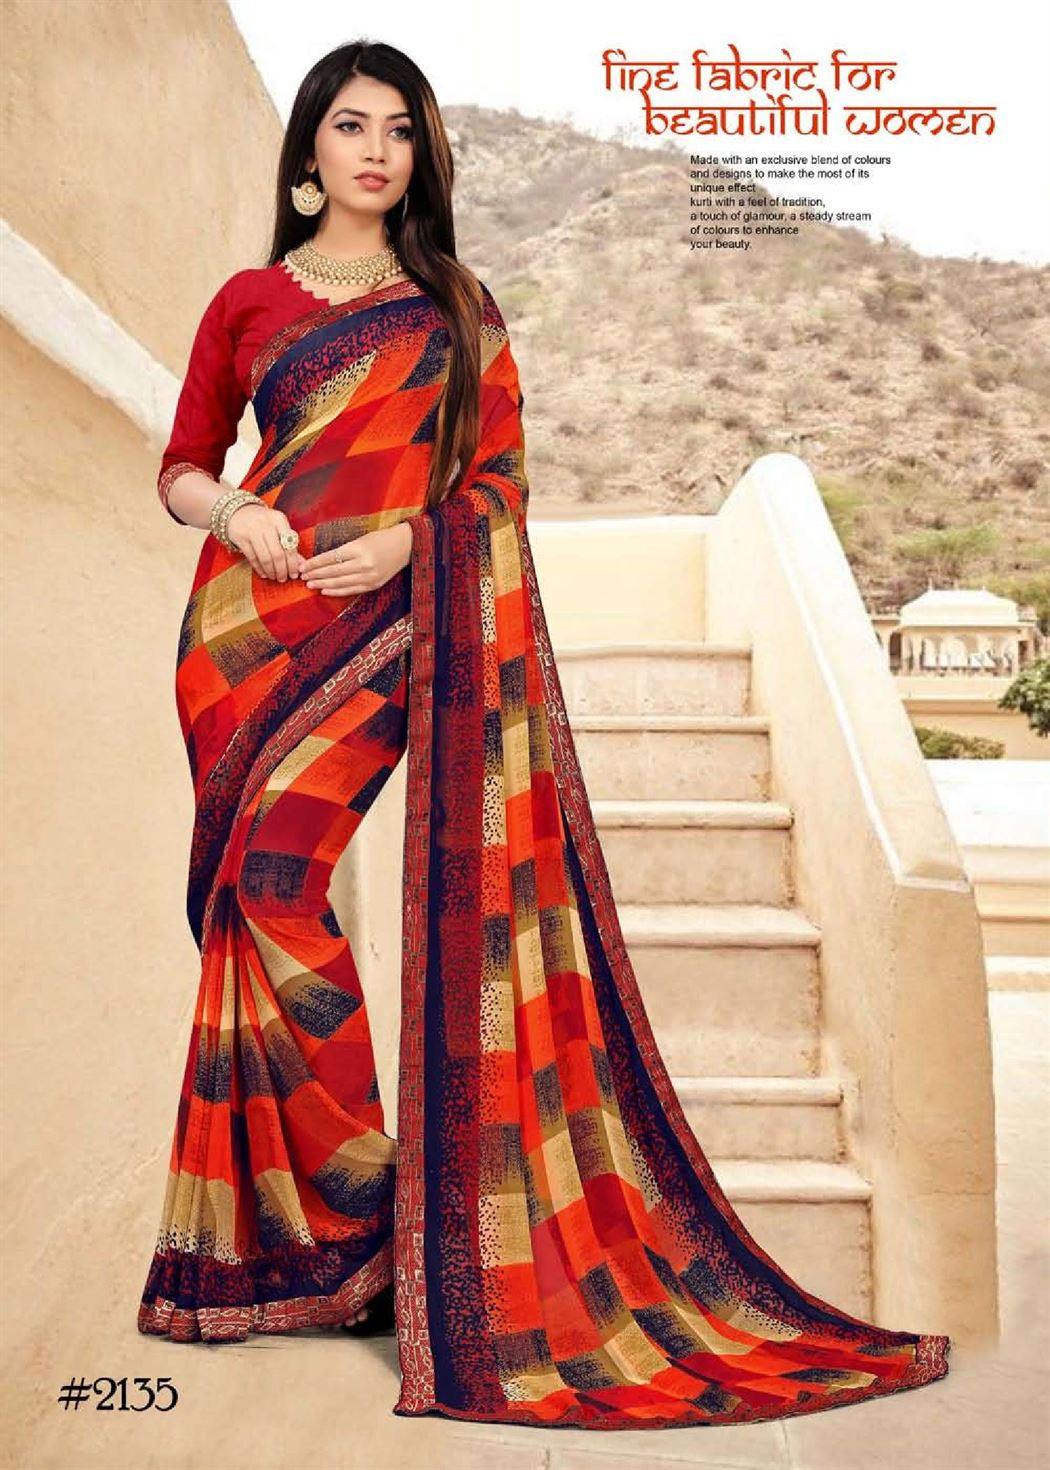 https://www.wholesaletextile.in/product-img/Rakshita--Weight-less-casual-wear-sarees-catalogue-71575697628.jpg